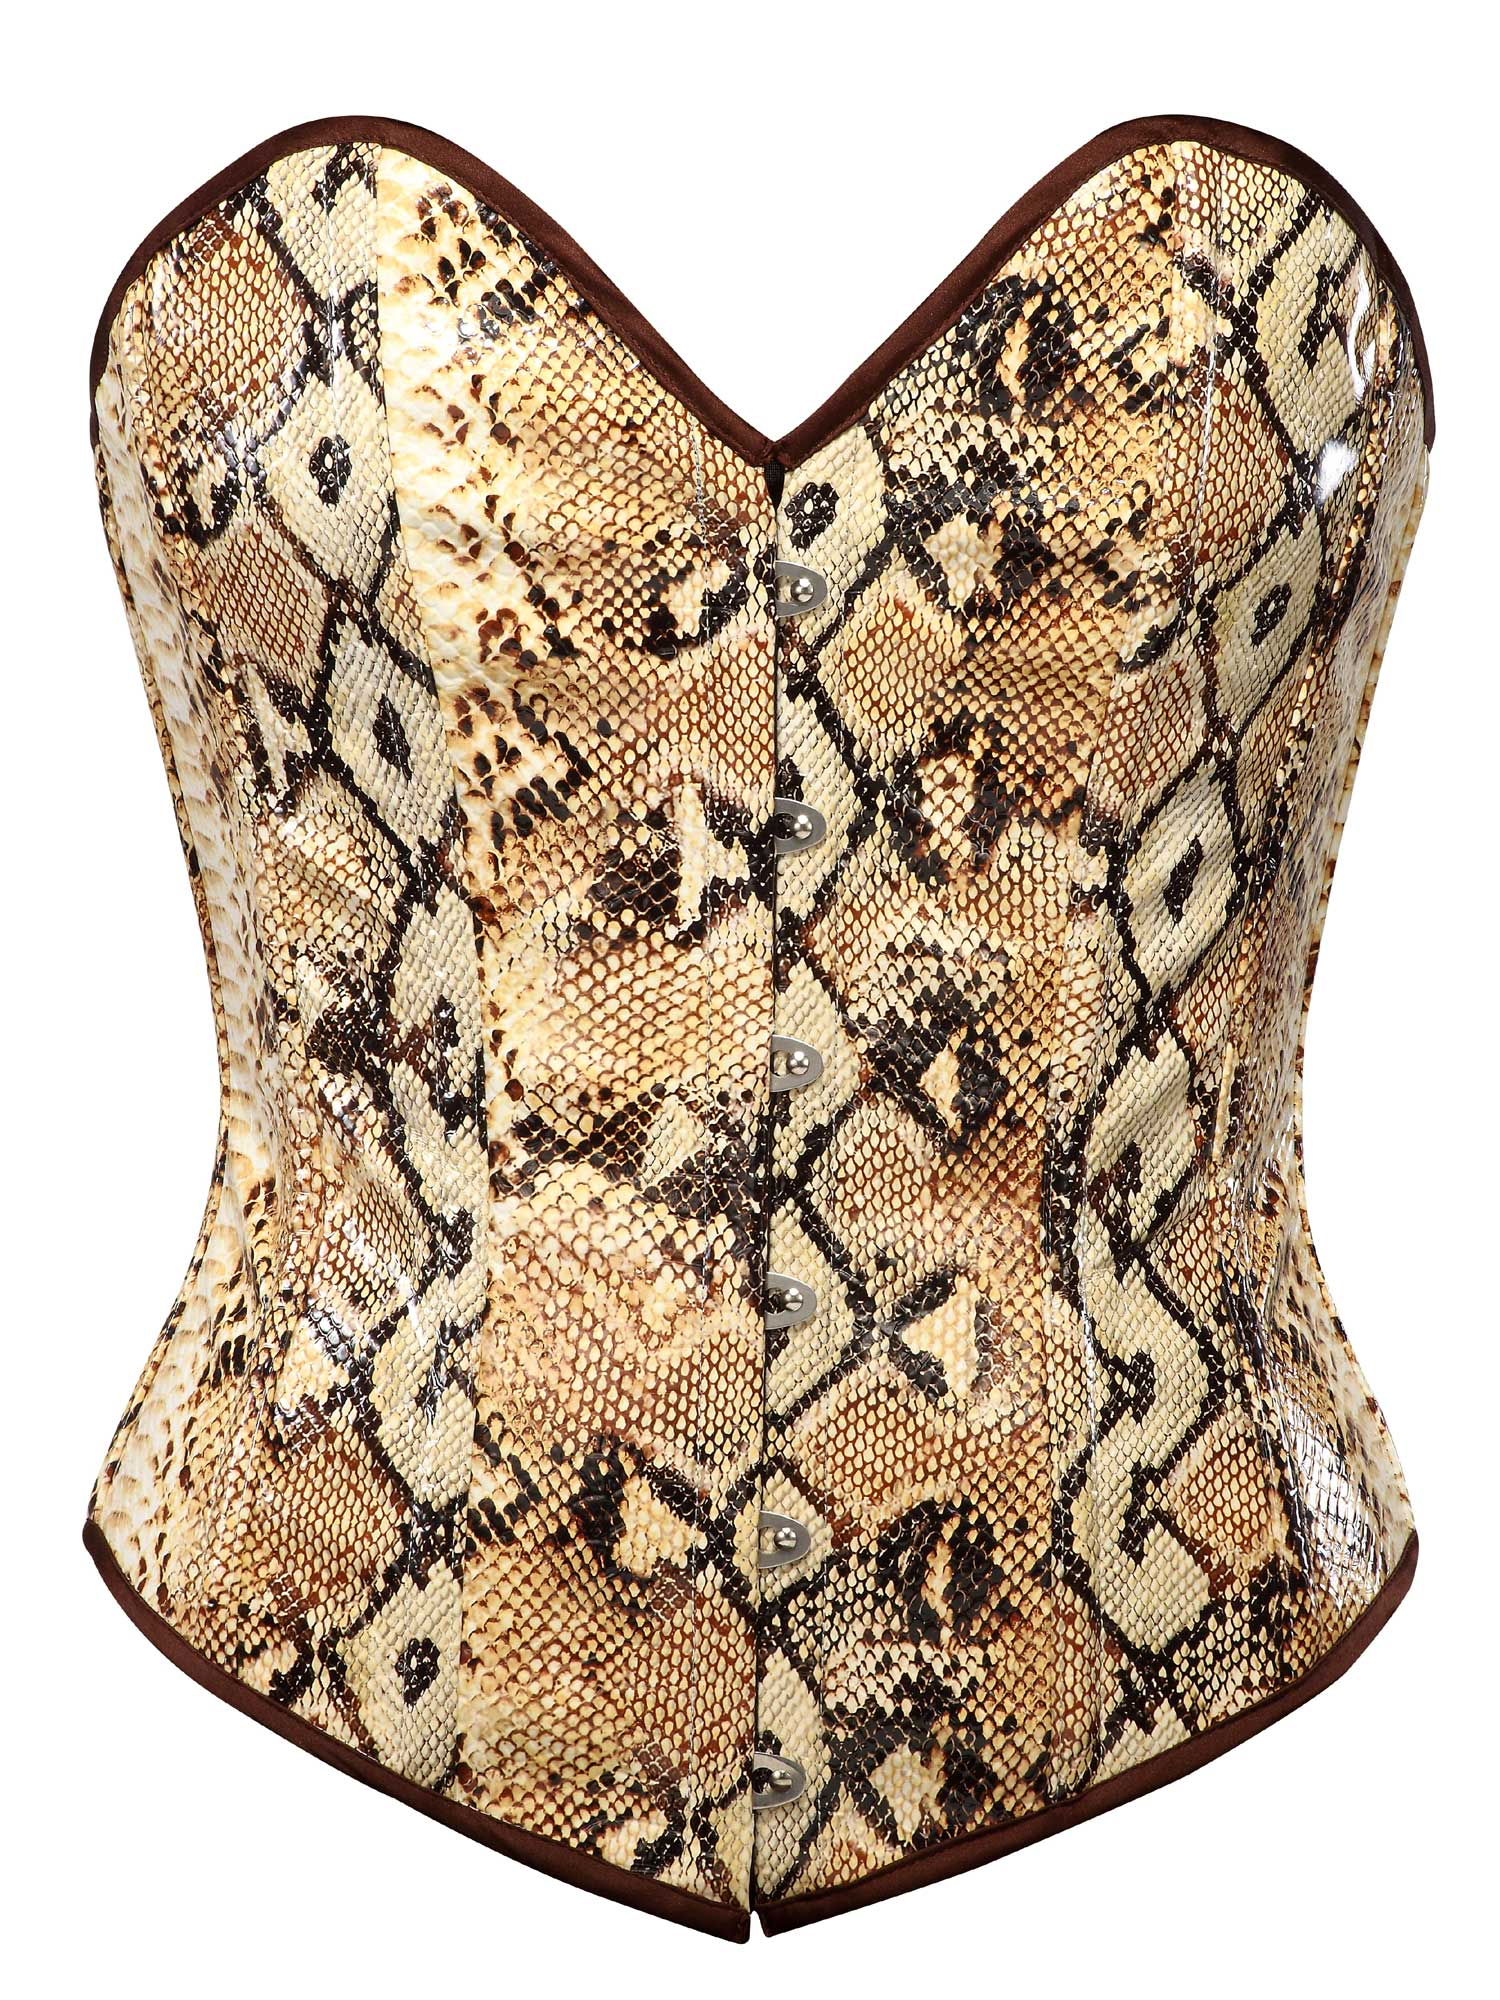 cobra_print_on_white_faux_leather_steel_boning_corset_waist_cincher_bustier_bustiers_and_corsets_5.jpg